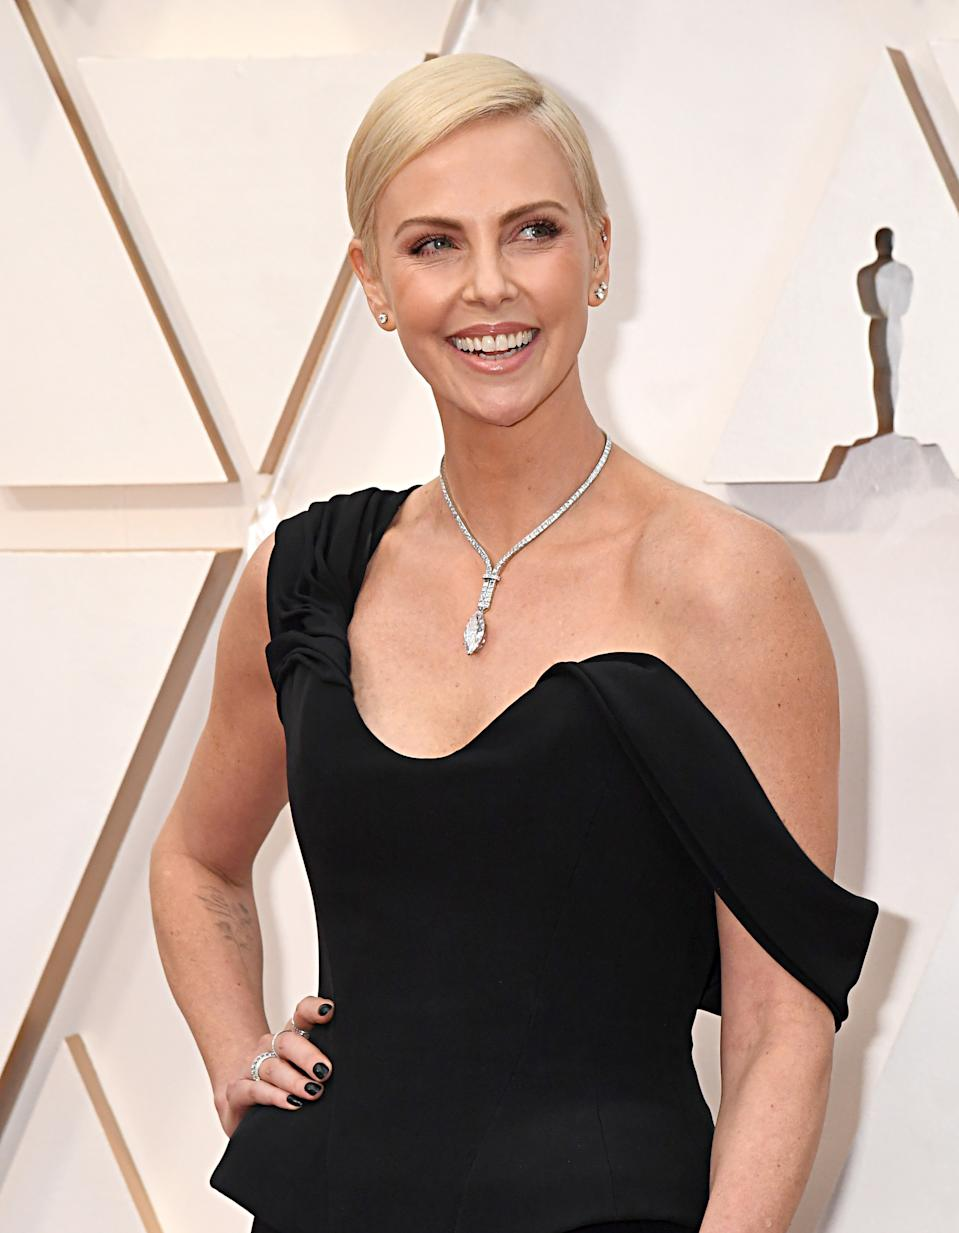 HOLLYWOOD, CALIFORNIA - FEBRUARY 09: Charlize Theron attends the 92nd Annual Academy Awards at Hollywood and Highland on February 09, 2020 in Hollywood, California. (Photo by Jeff Kravitz/FilmMagic)